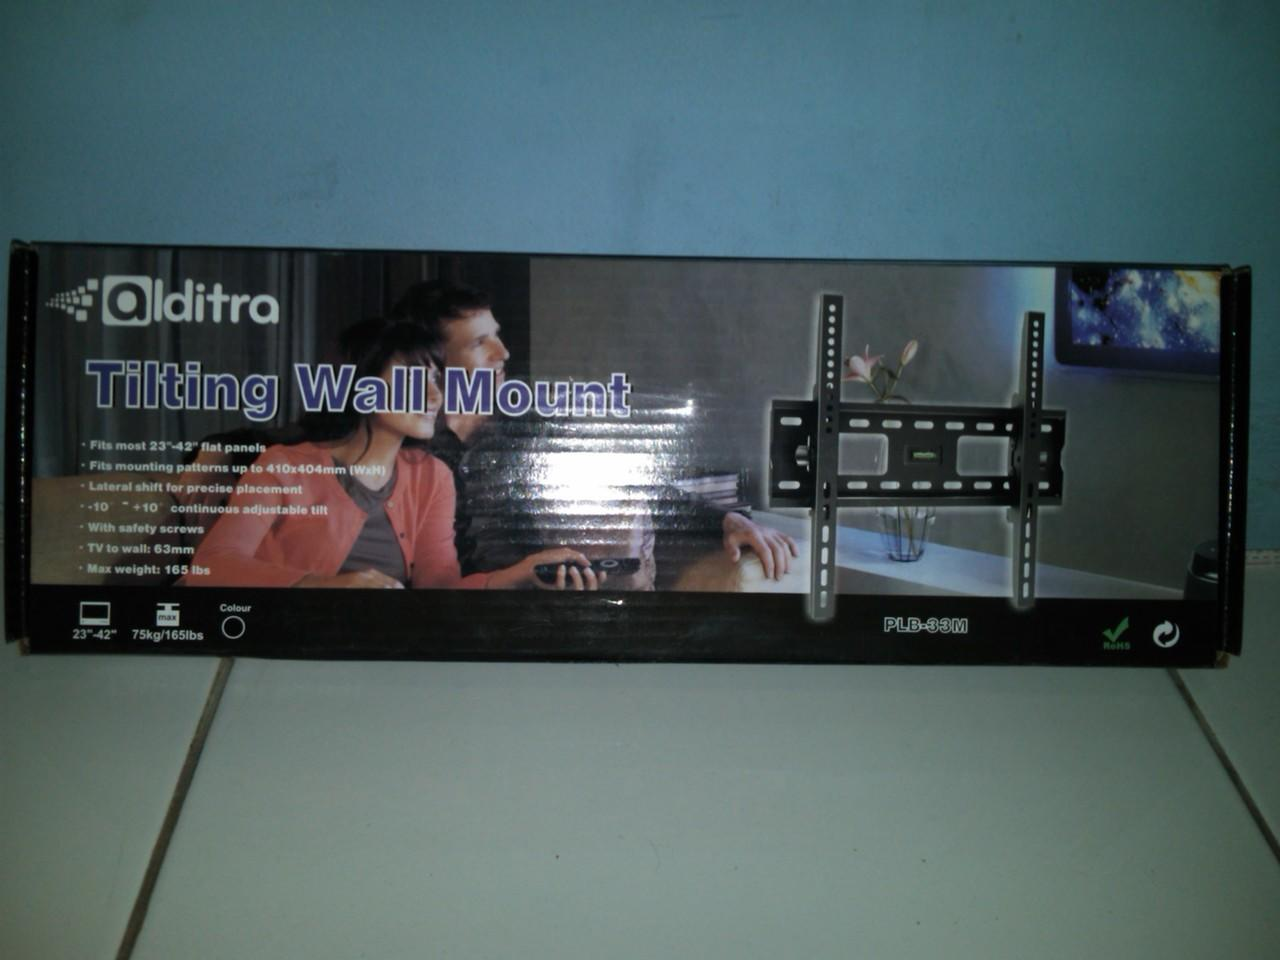 Jual Brand New Bracket LCD TV 23 - 42 inchi